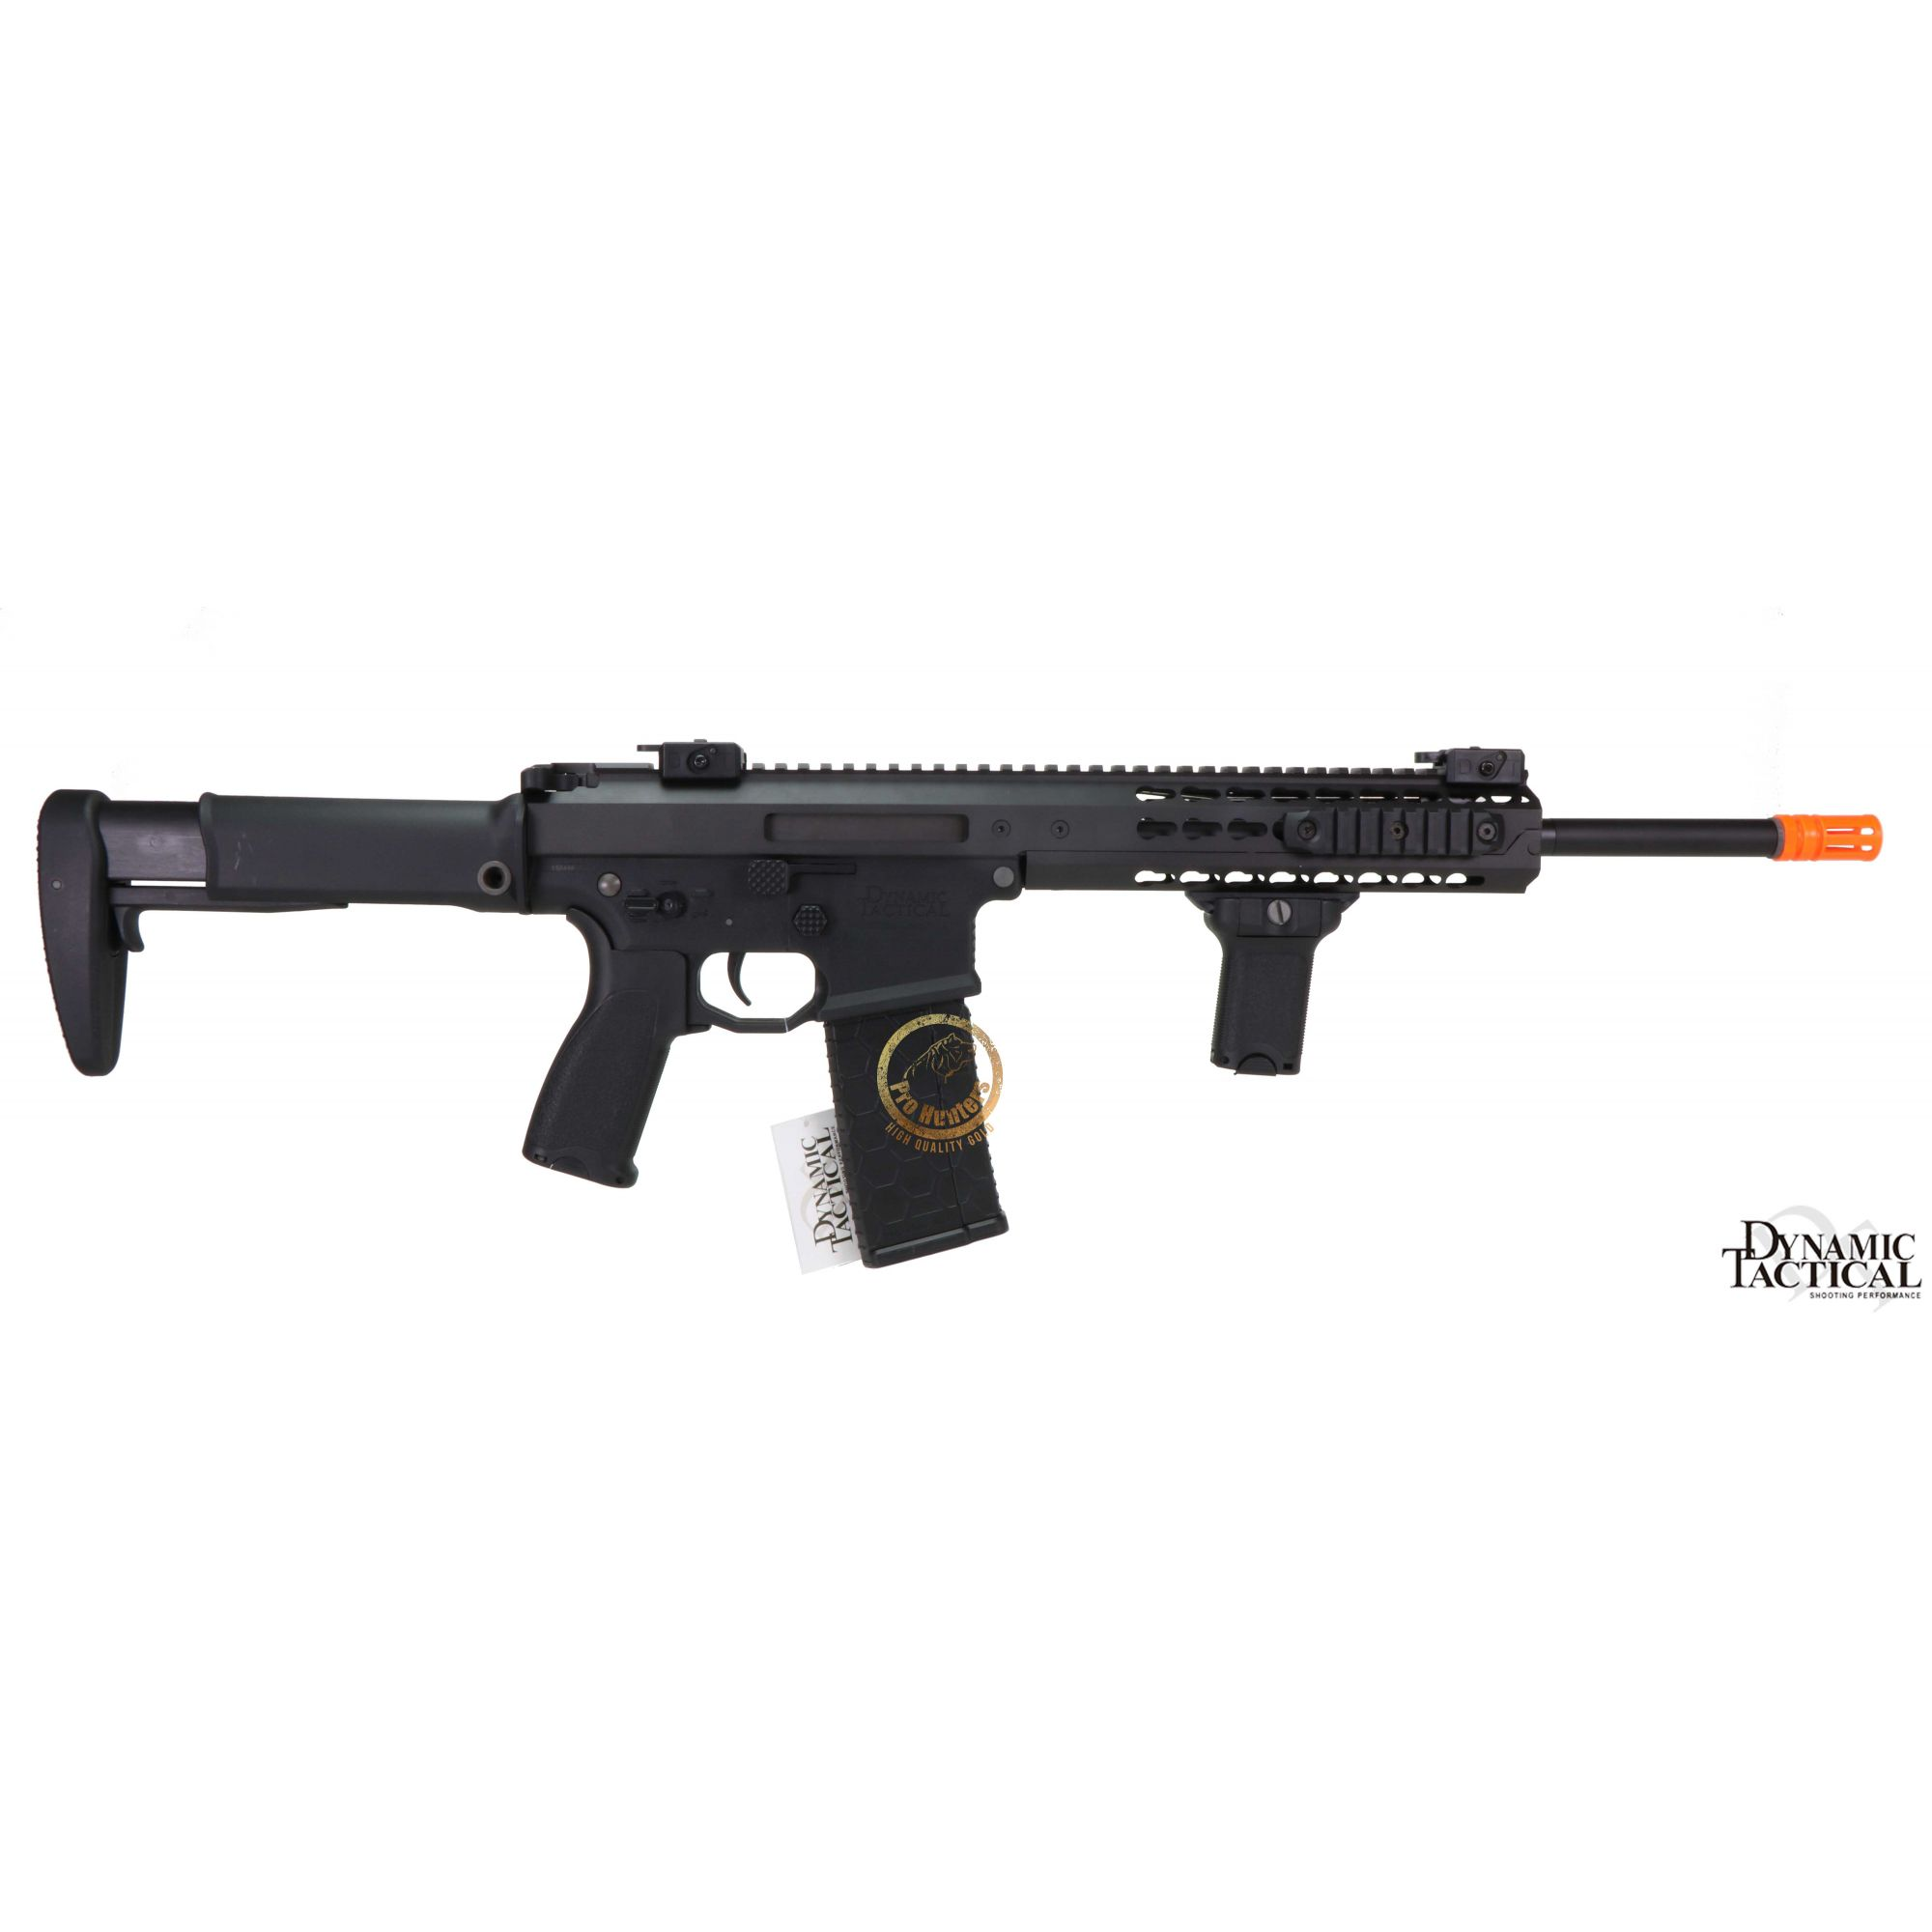 Rifle Airsoft Dytac Warlord Carbine Type A - Black